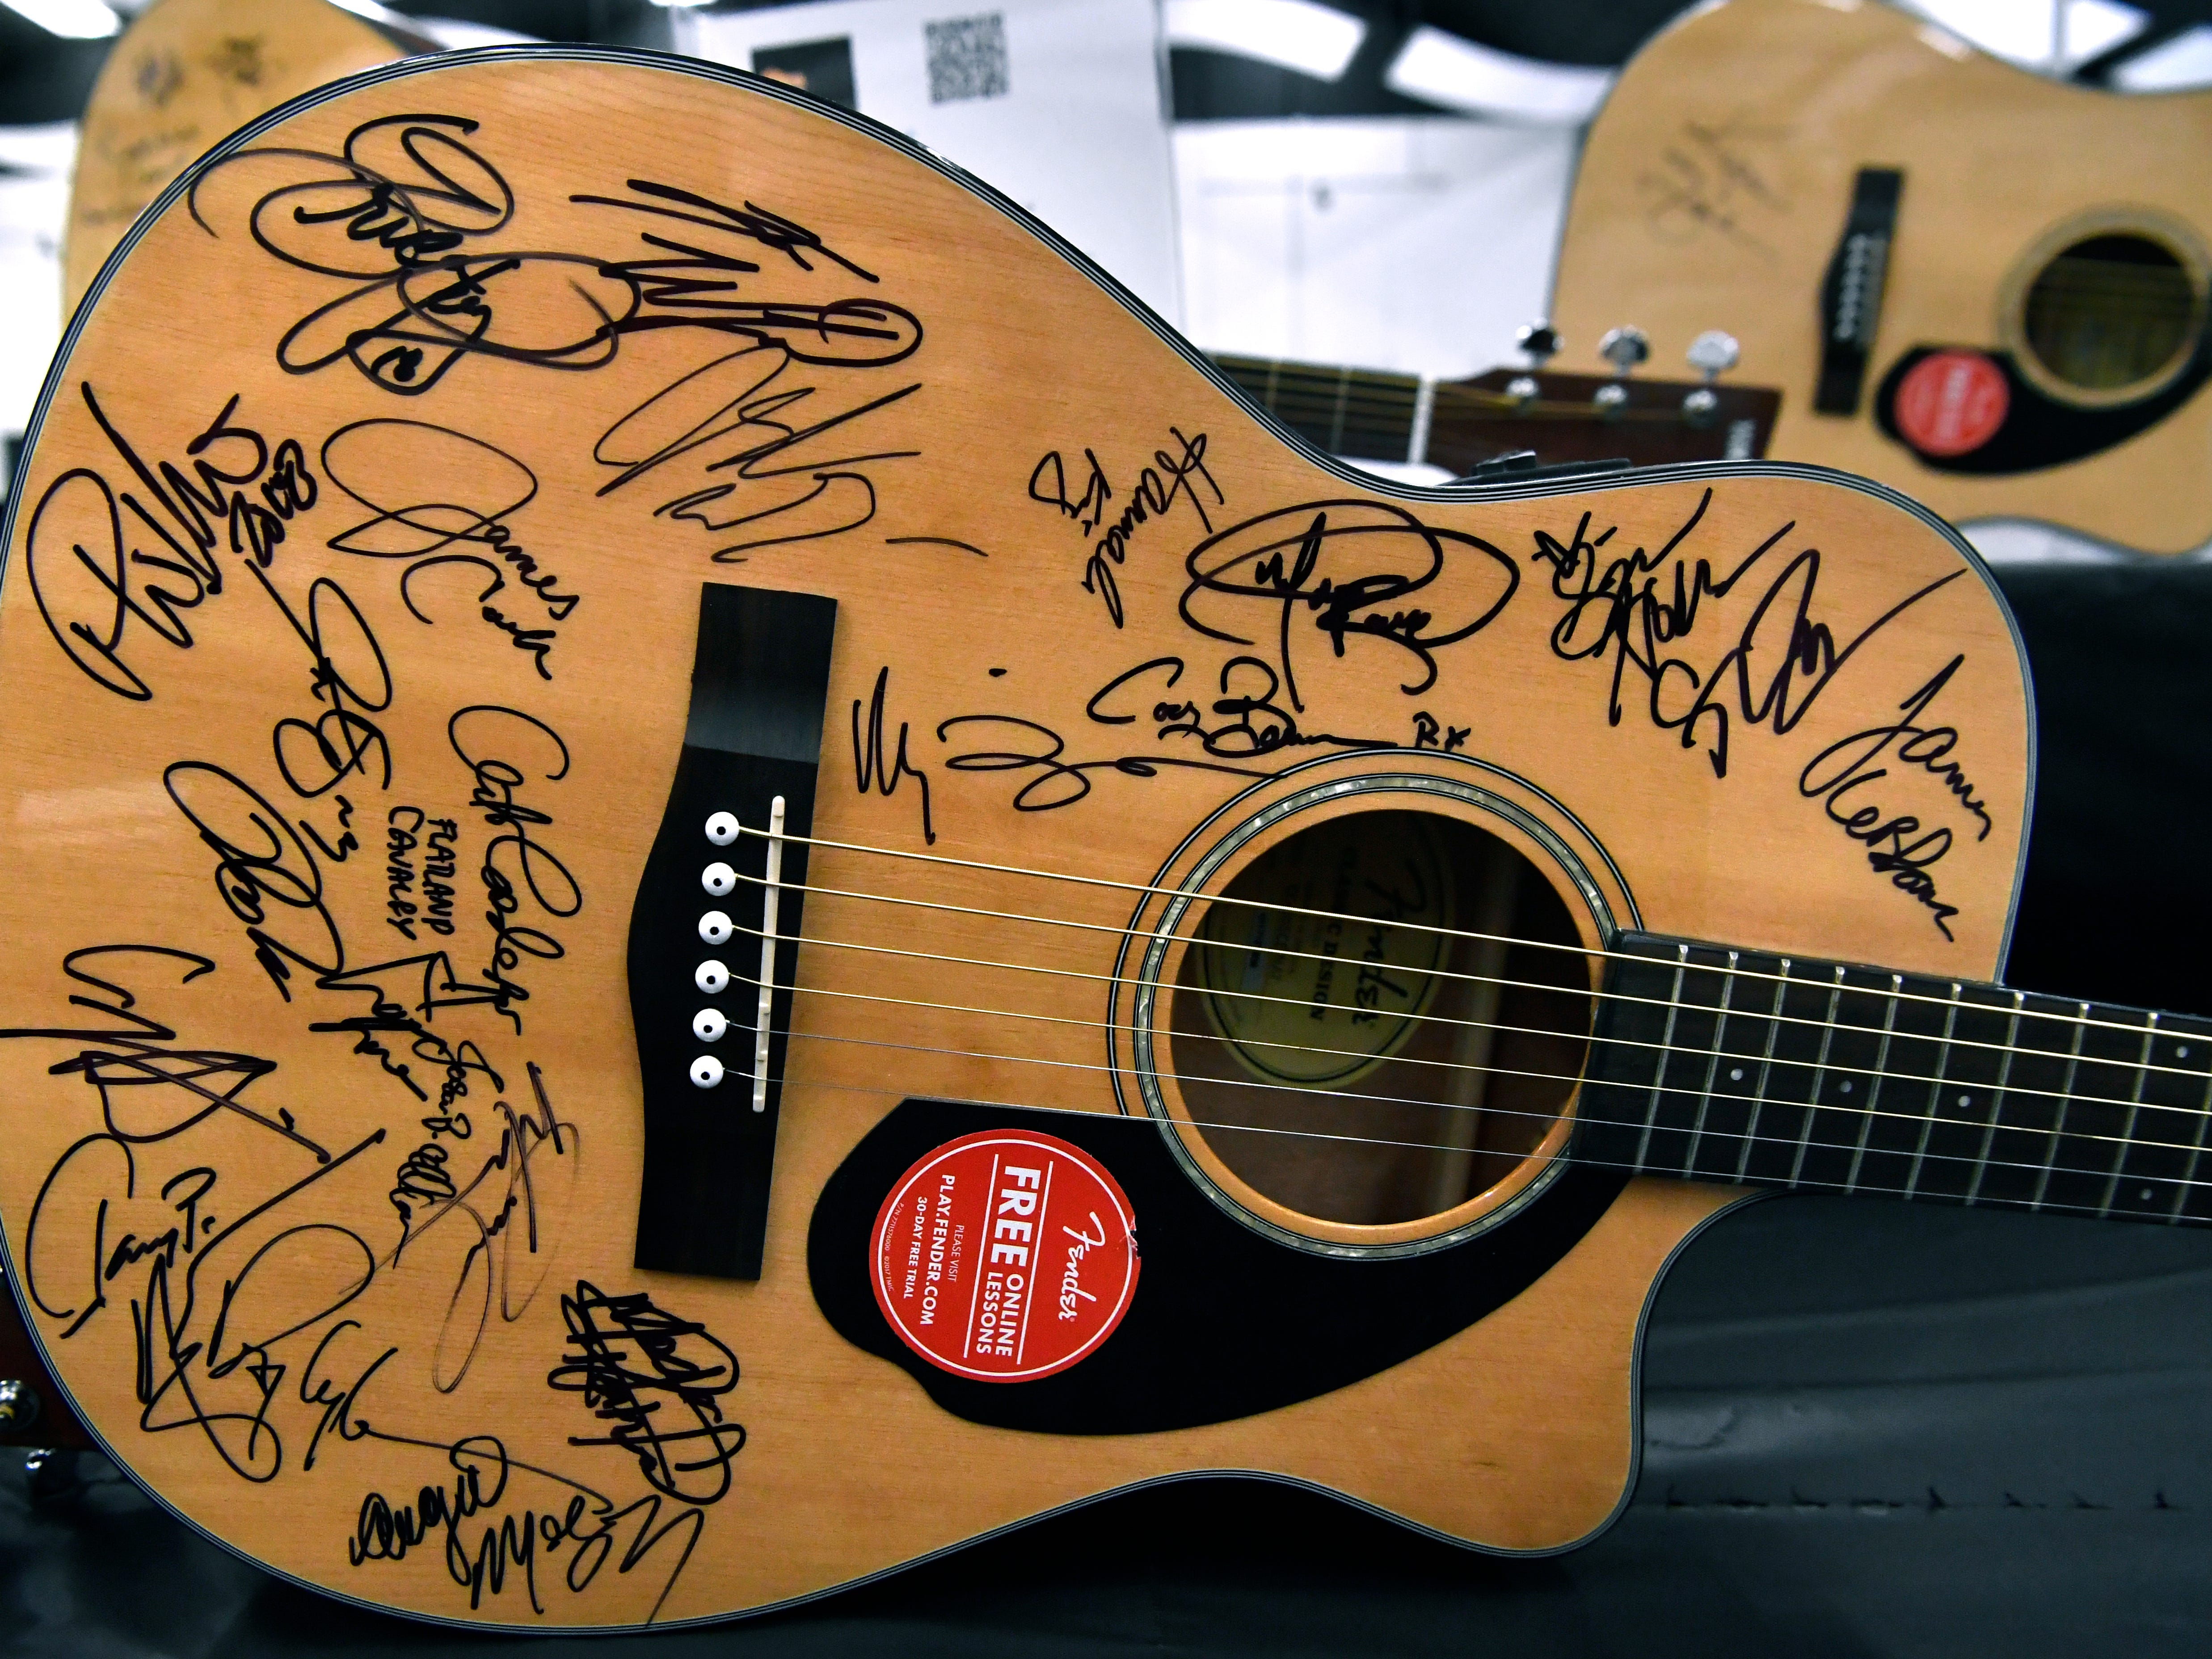 A guitar autographed by the 2018 Outlaws & Legends performers was one of the items up for auction during Saturday's West Texas Rehabilitation 2019 Telethon & Auction Jan. 20, 2019. This was the 49th year for the benefit.